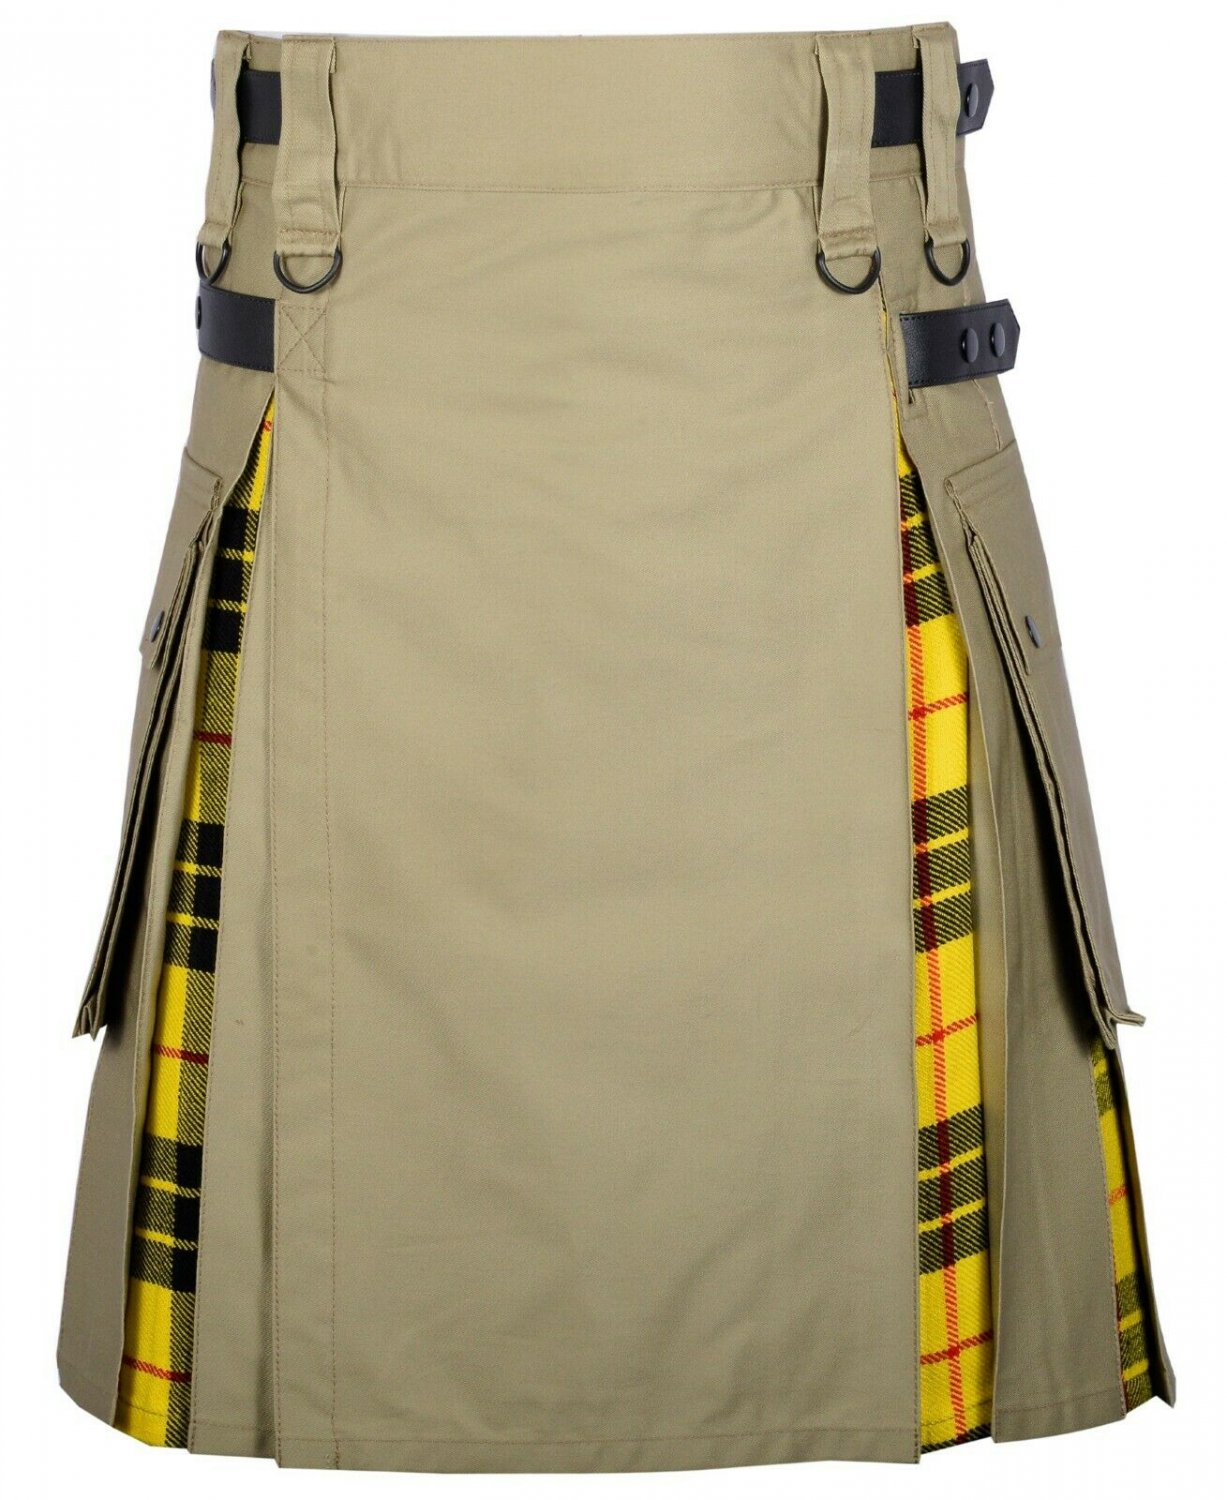 52 Size Khaki Cotton -Macleod of Lewi tartan Scottish Utility Cargo Hybrid Cotton Kilt For Men